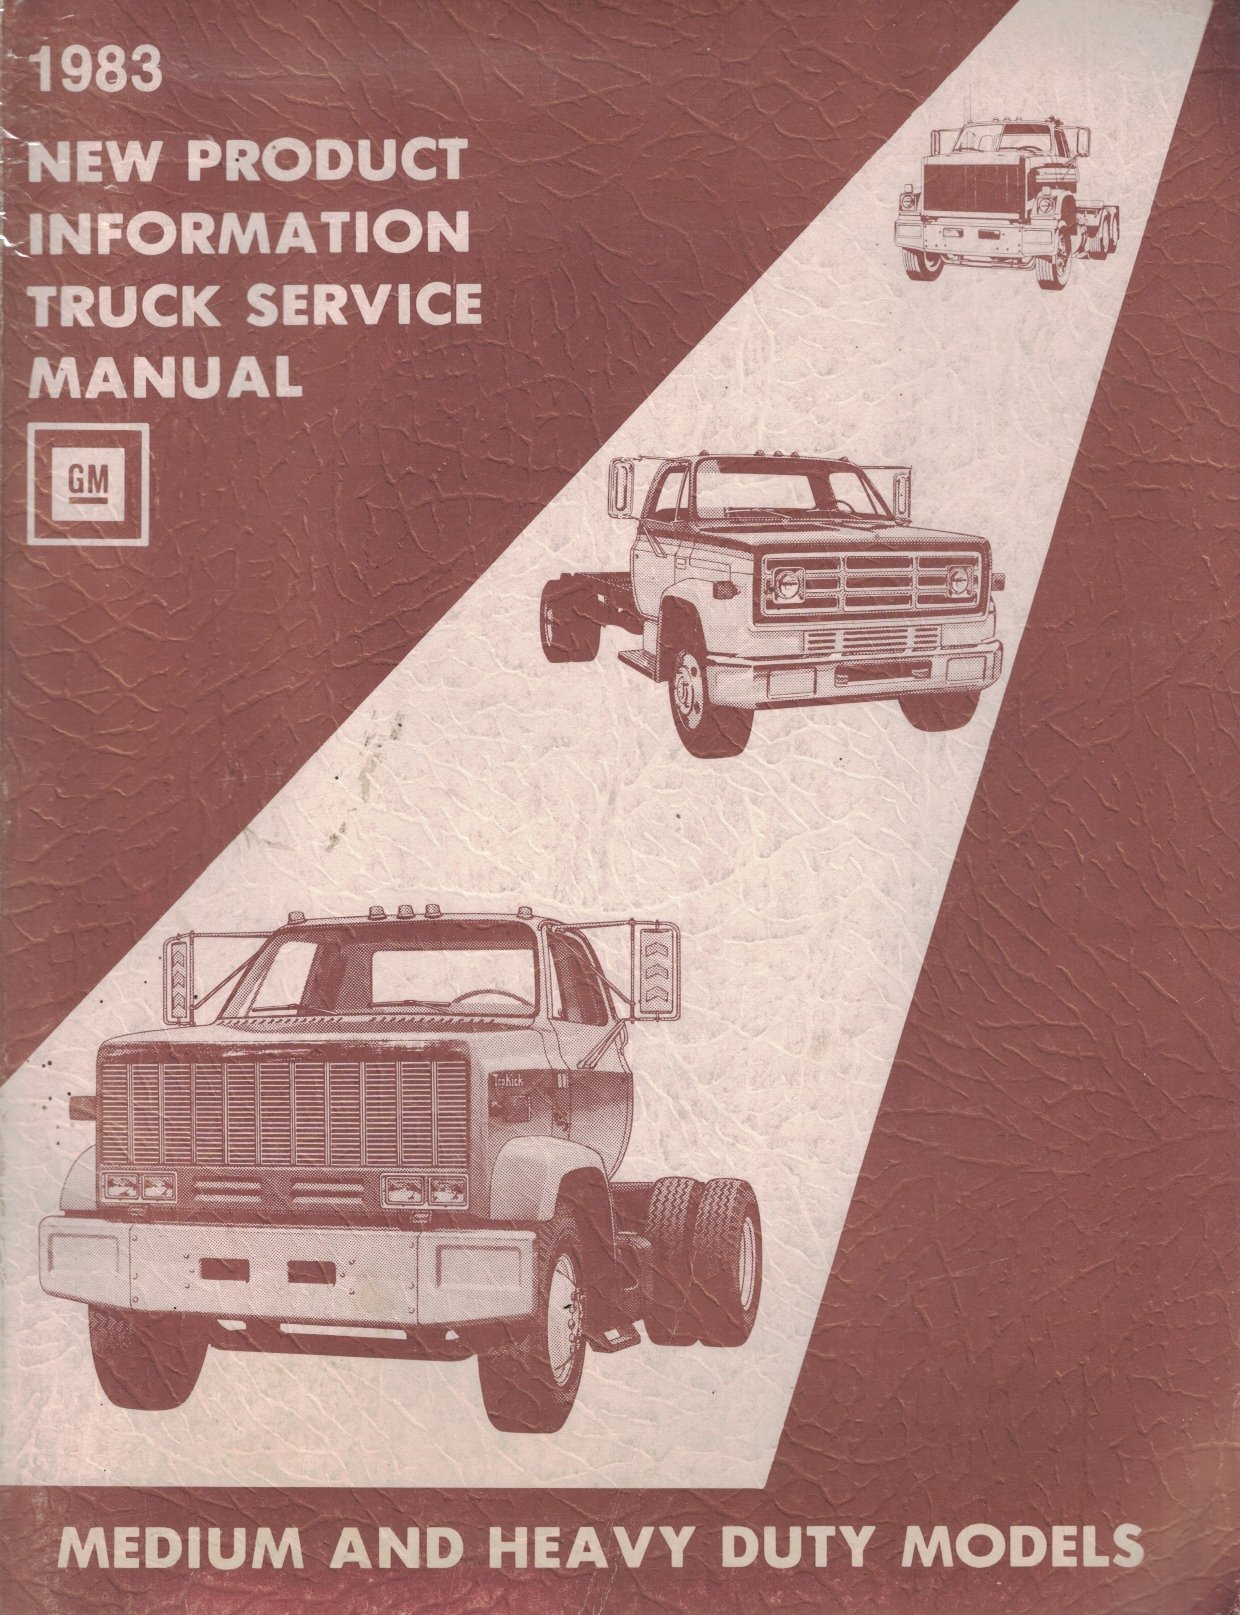 Image for 1983 GMC/Chevrolet New Product Information Truck Service Manual - Medium and Heavy Duty Models